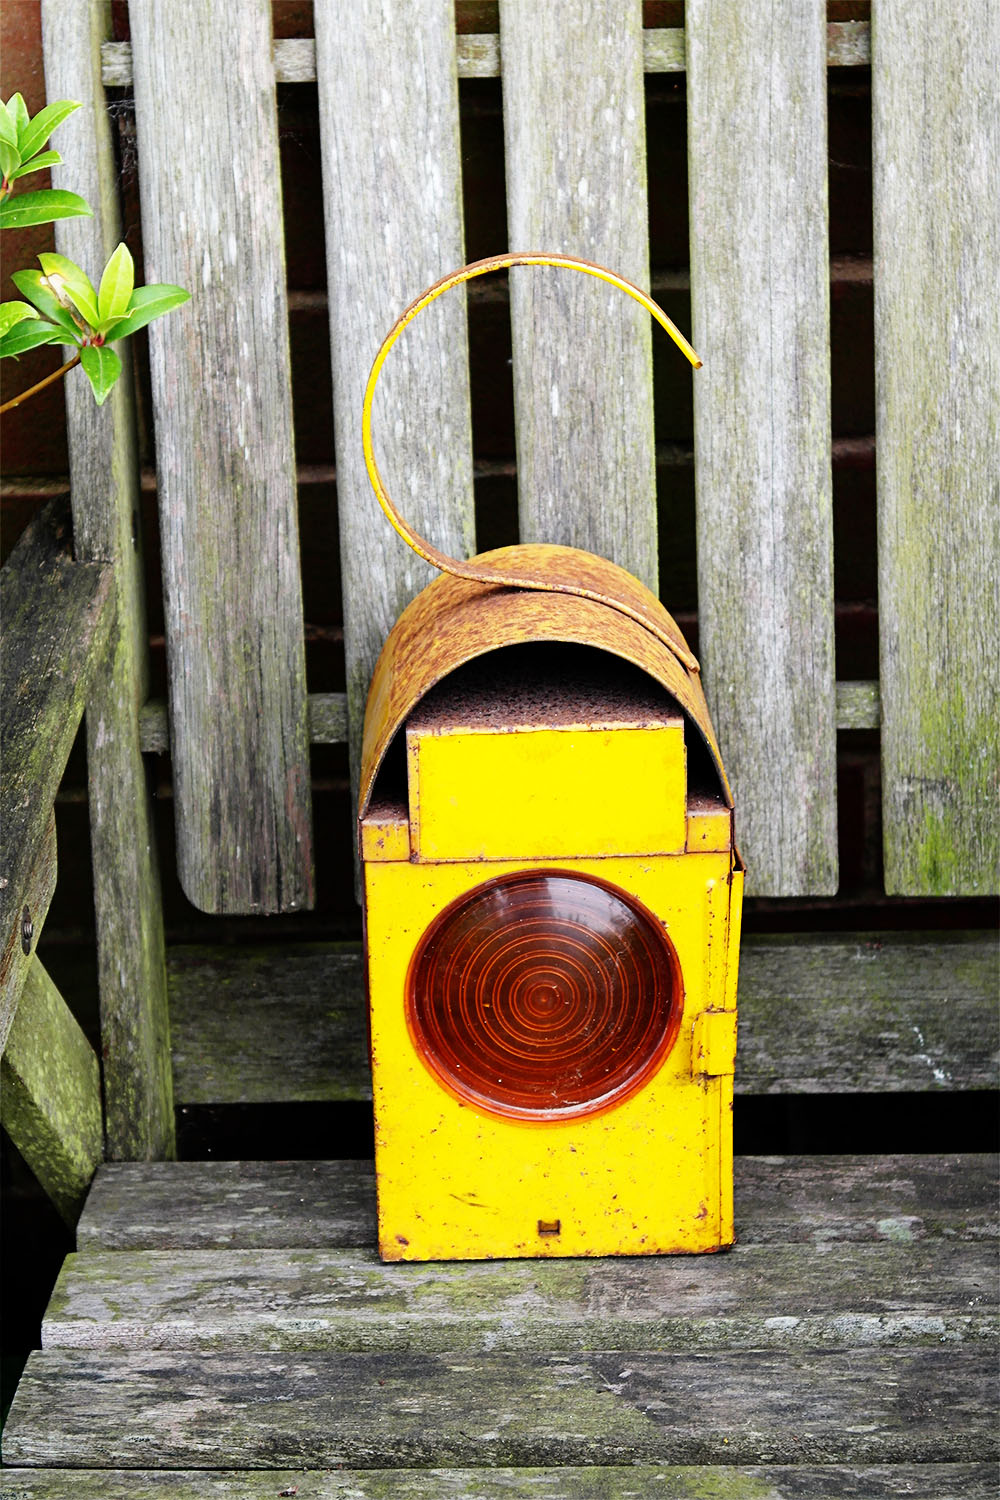 vintage road lamp (from a time when there were no 'cones' or street lights in many places)